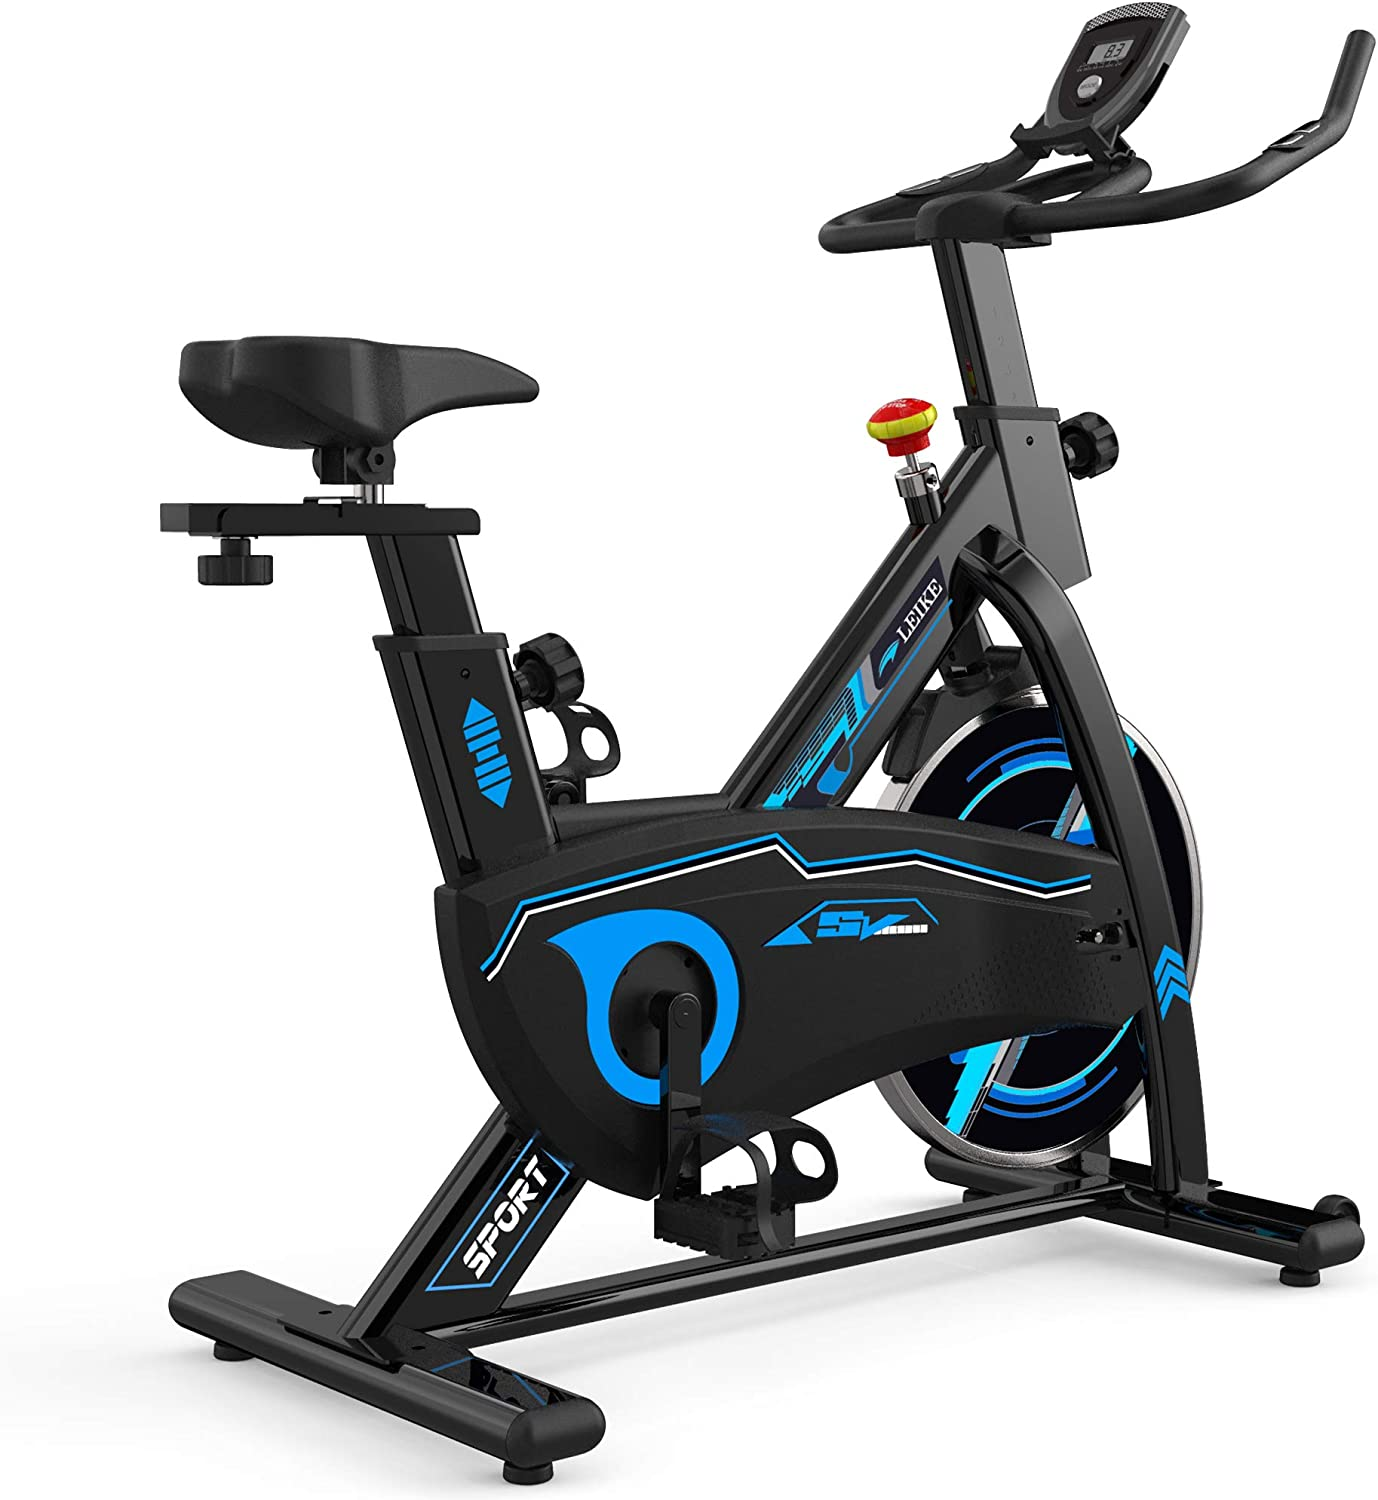 leikefitness Indoor Cycling Bike Stationary Easy to Assemble Ultra-Quiet Exercise Bike with LCD Display for Home Cardio Workout